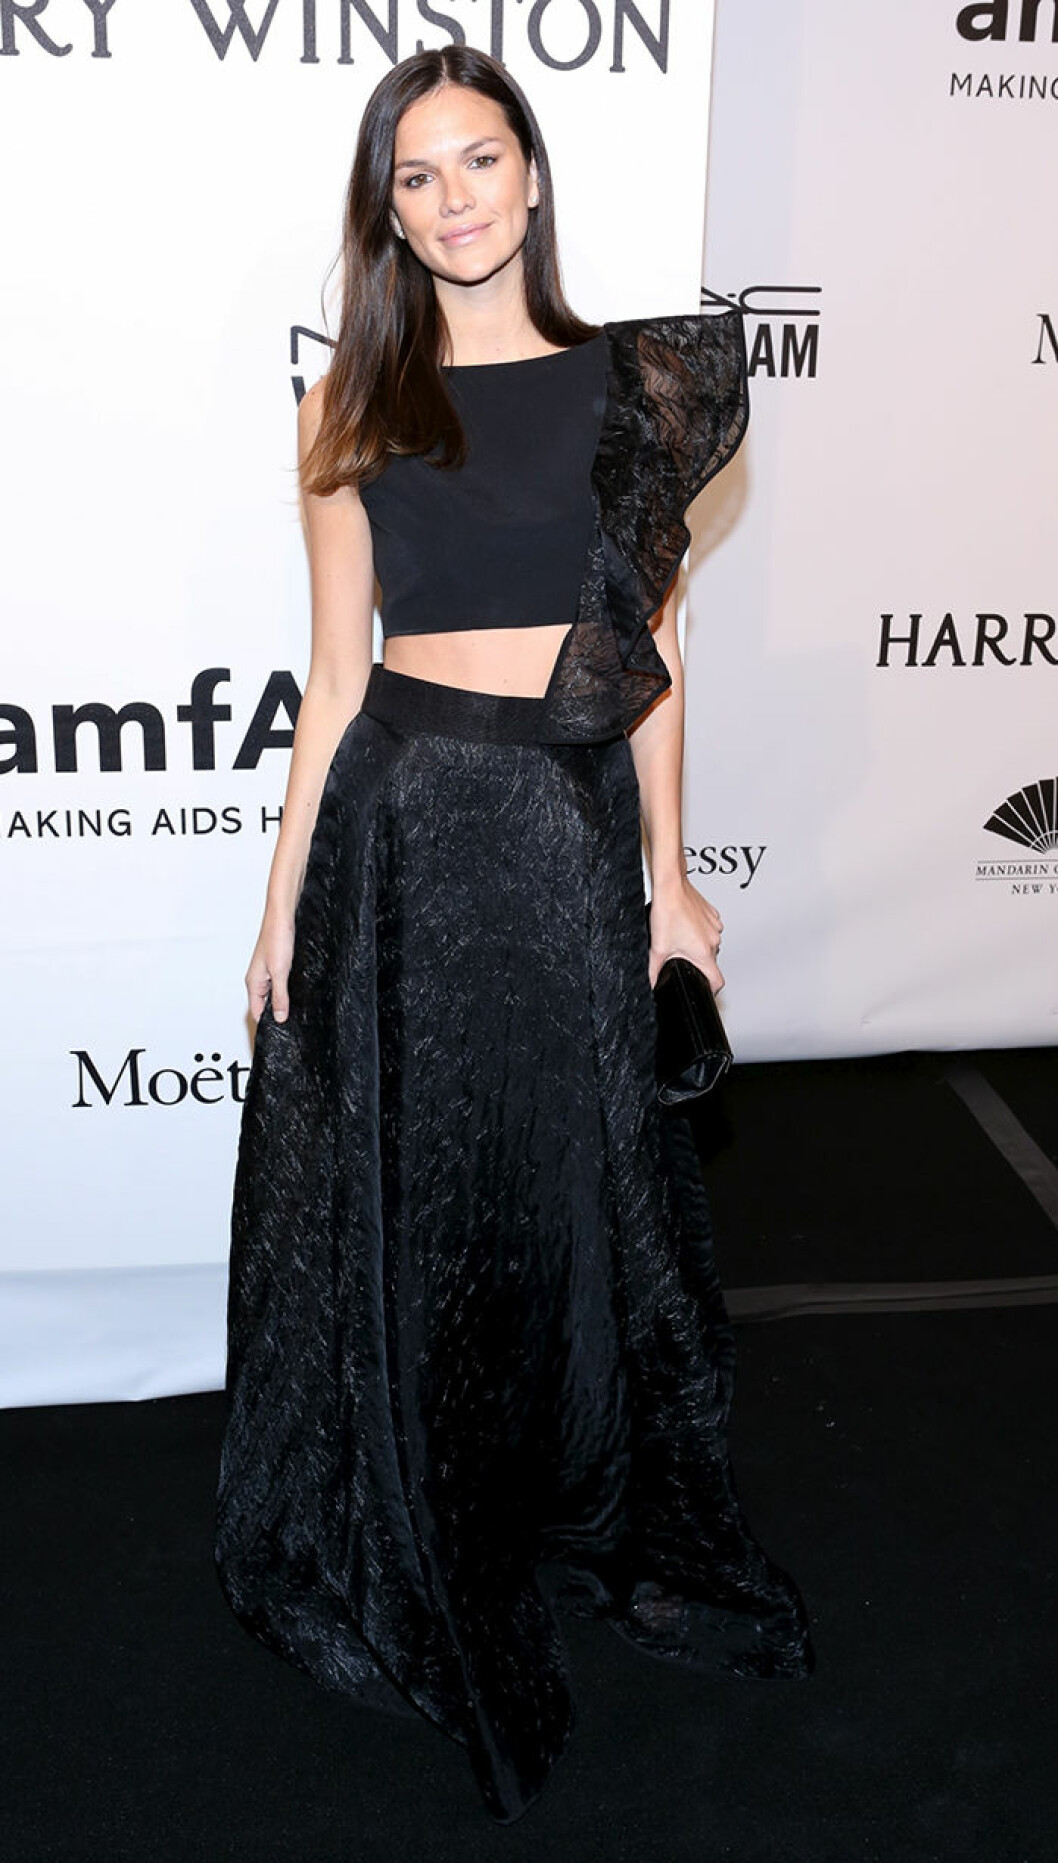 Allie Rizzo seen attending the 2015 amfAR New York Gala at Cipriani Wall Street